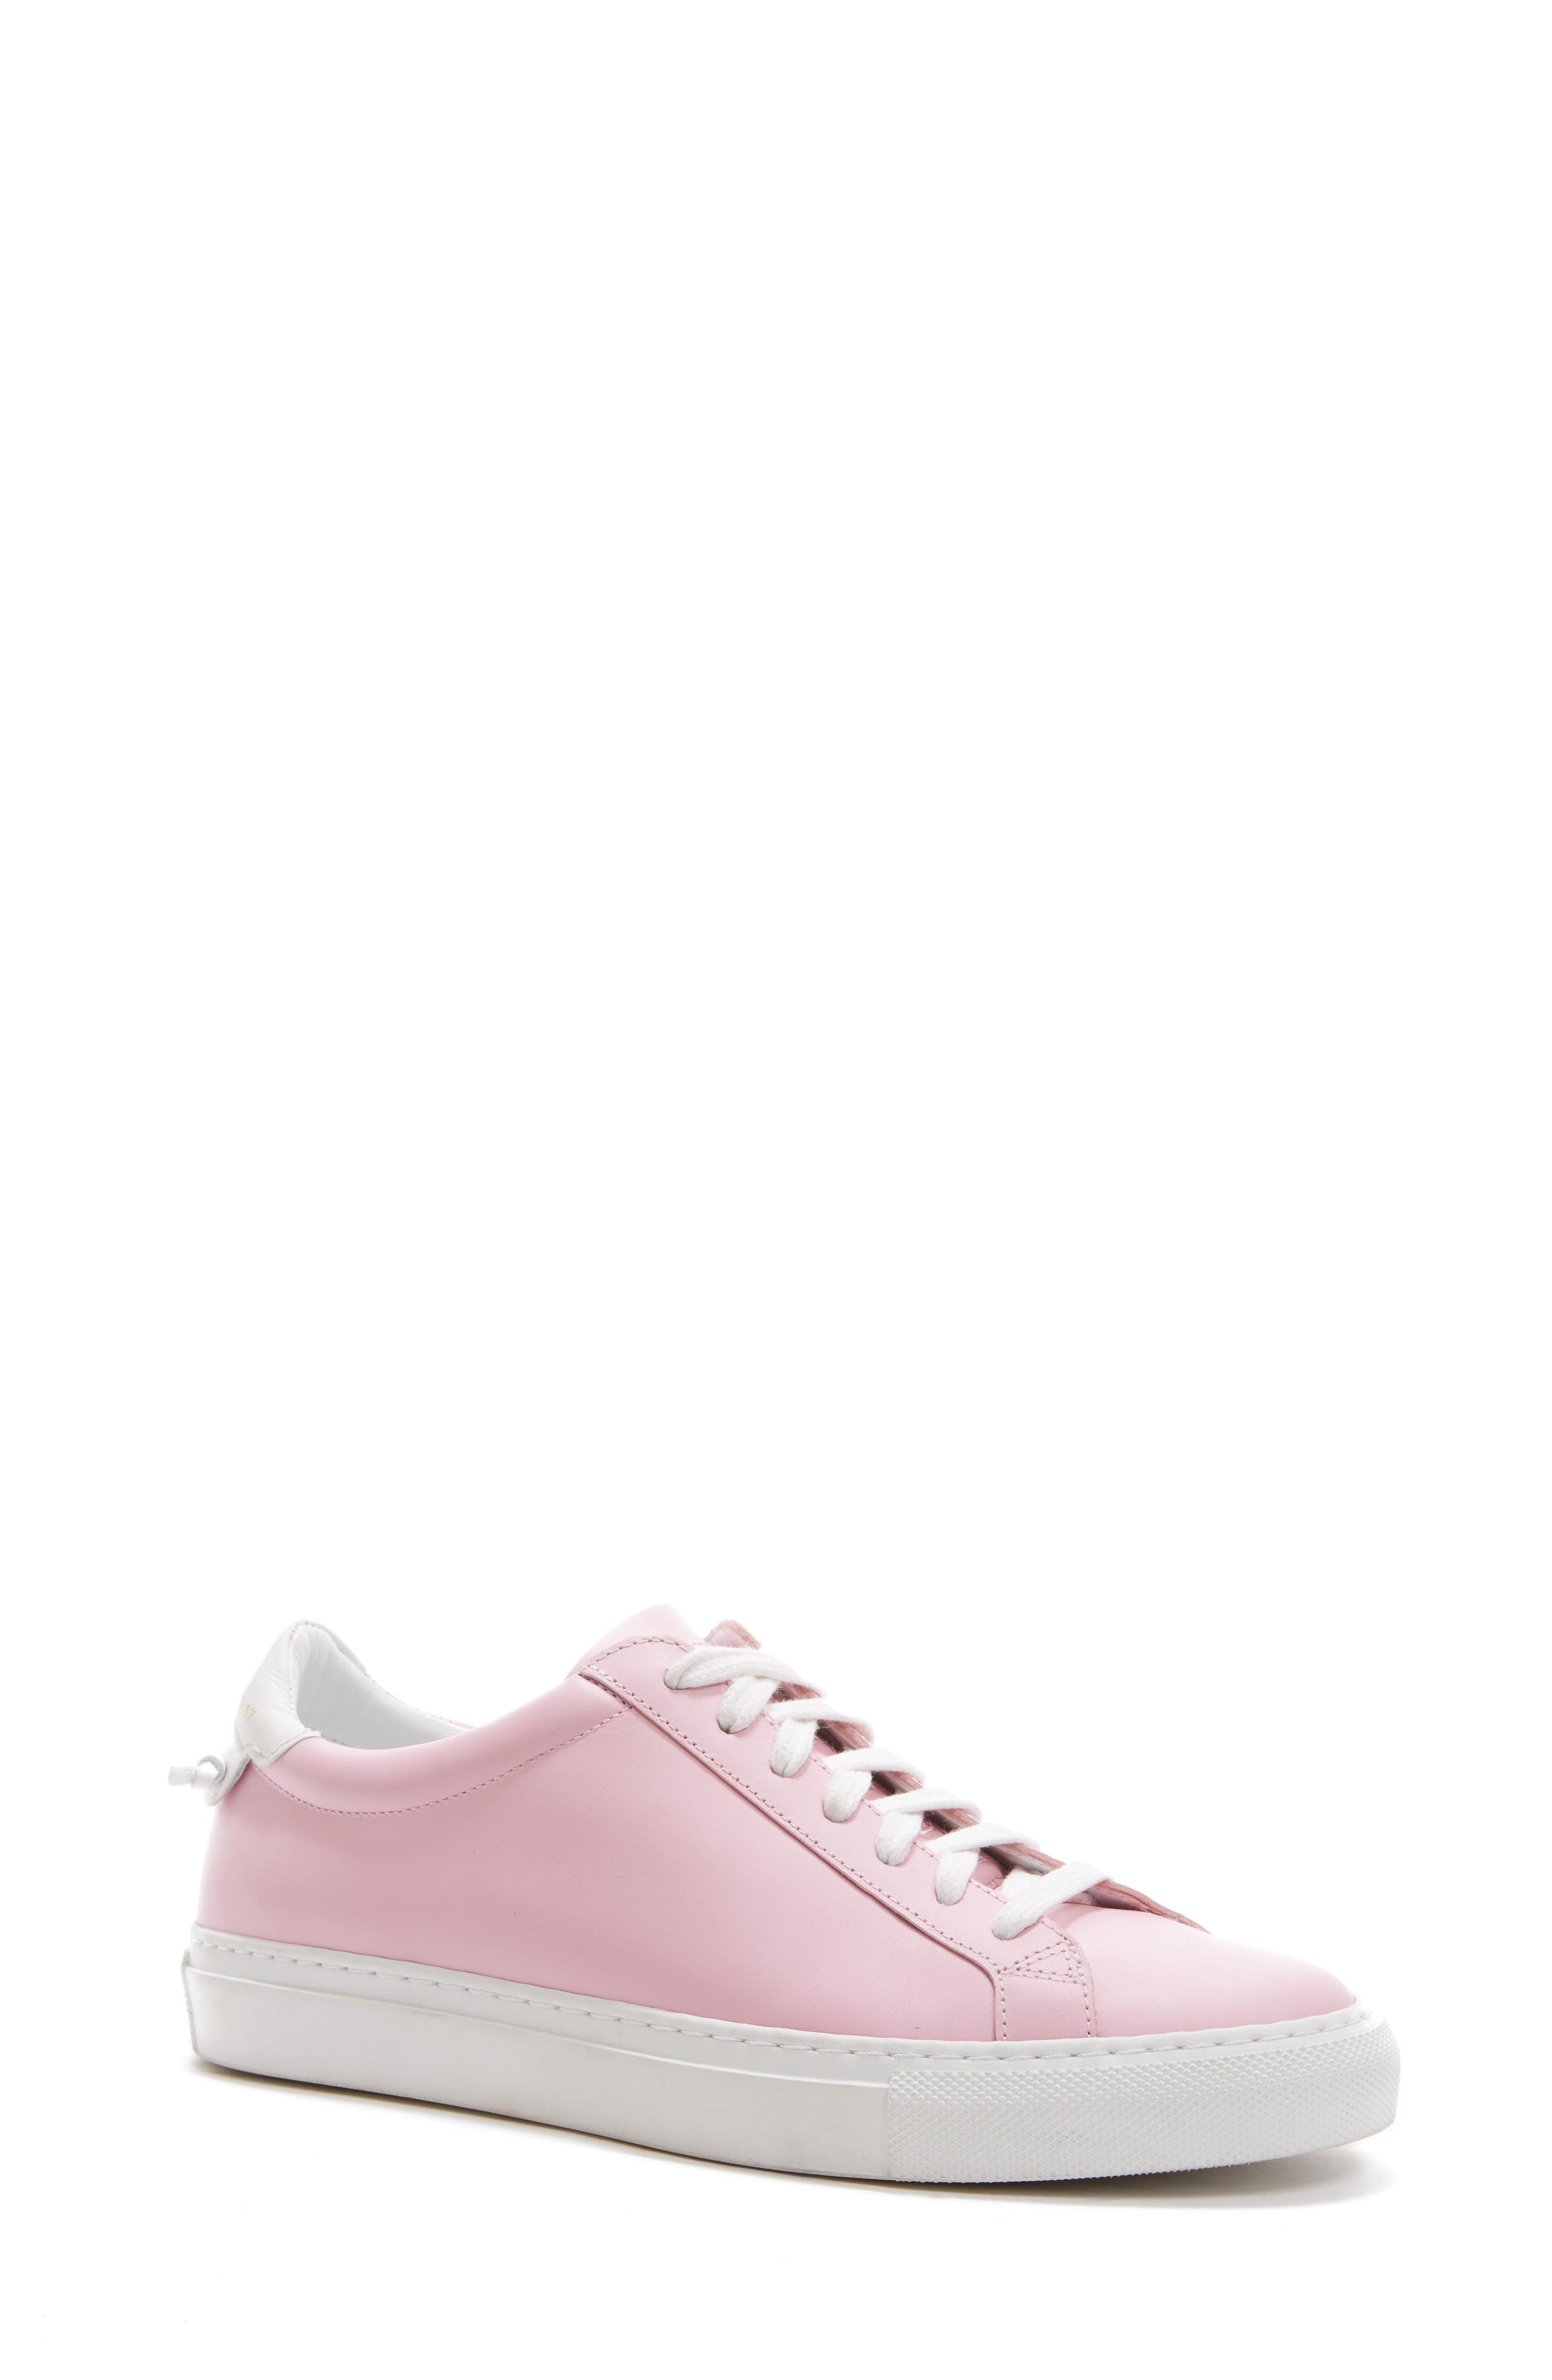 Main Image - Givenchy Low Sneaker (Women)